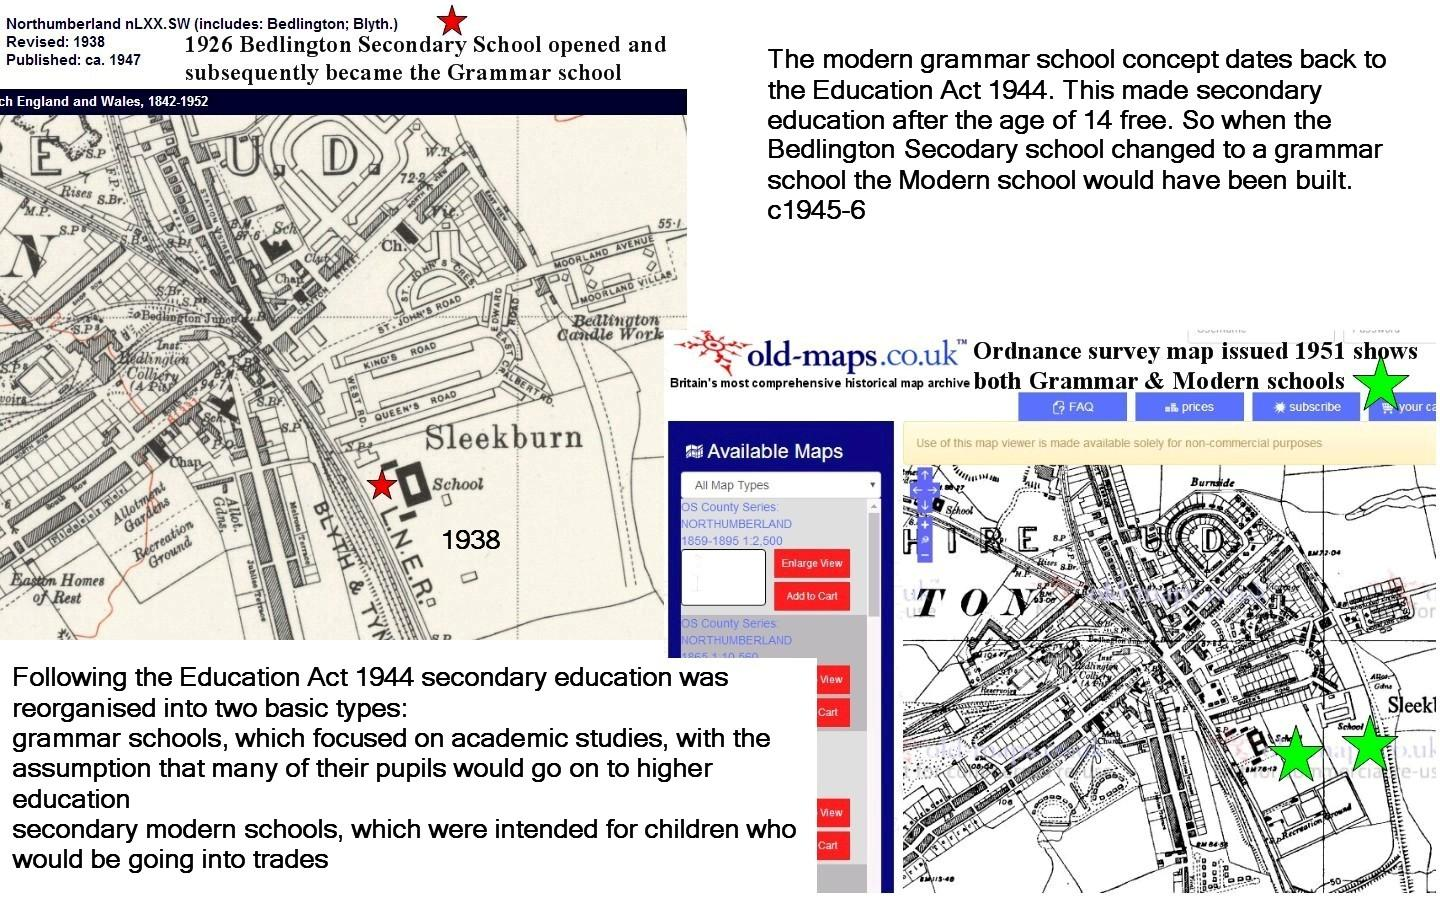 When did the secondary Modern school open 1945-6?